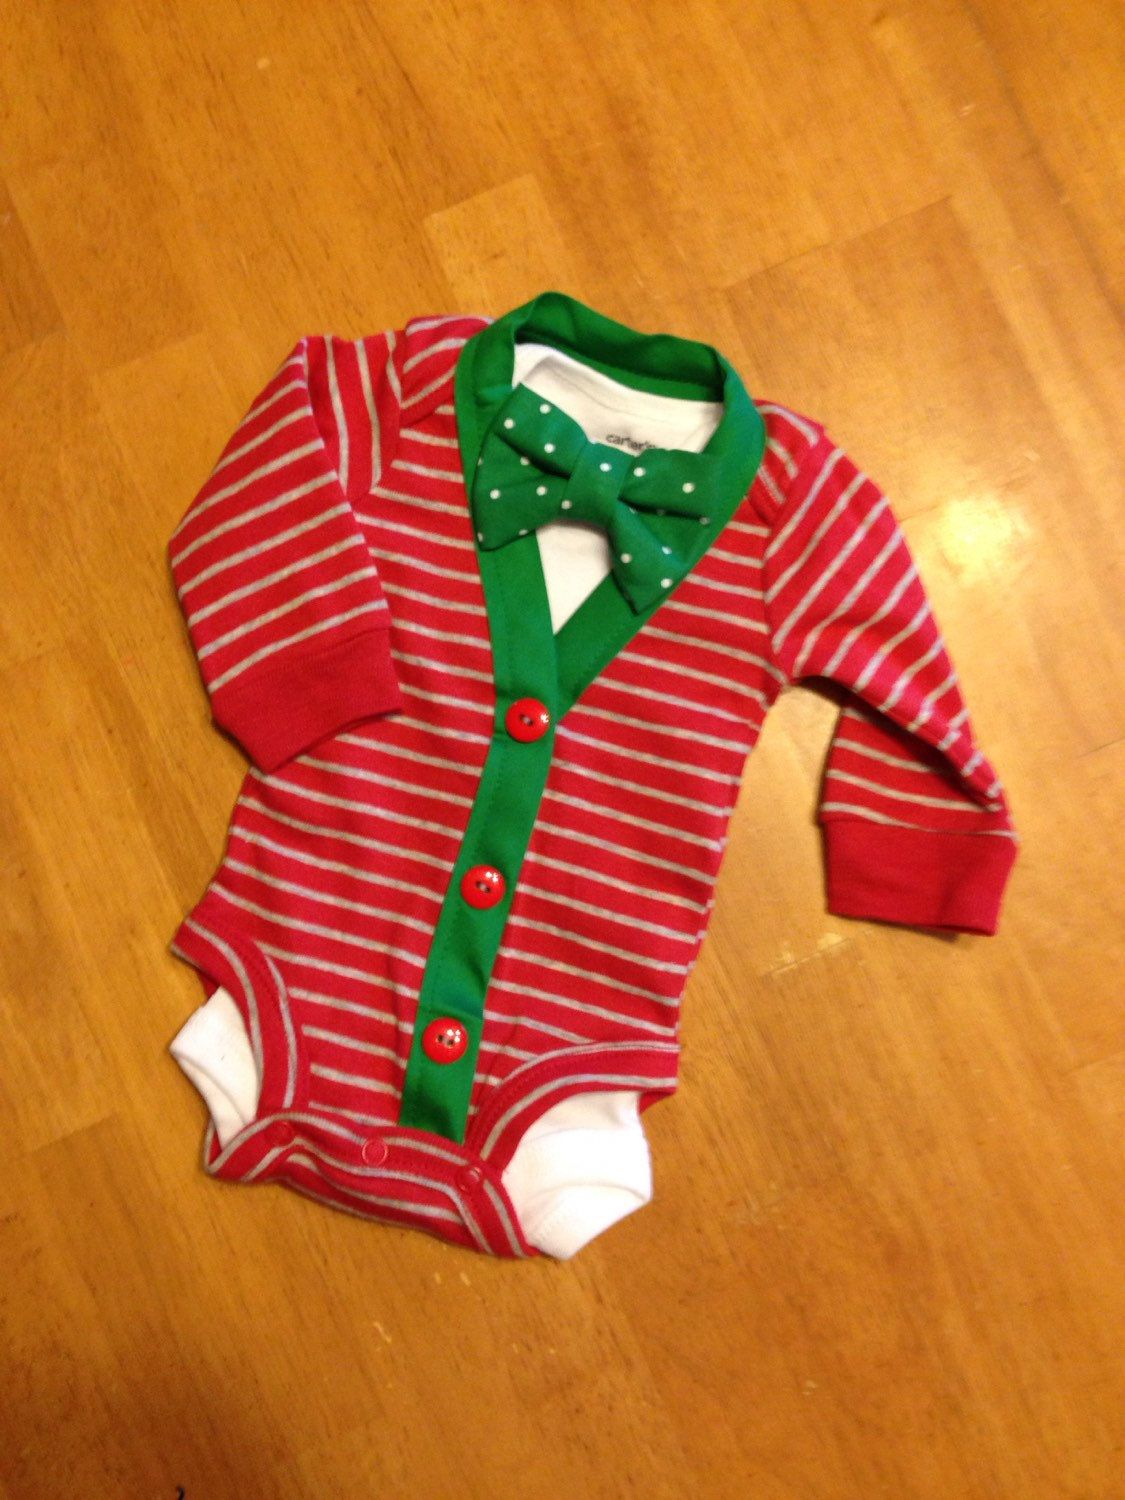 Pin by Anna Johnson on Christmas outfits Boys christmas